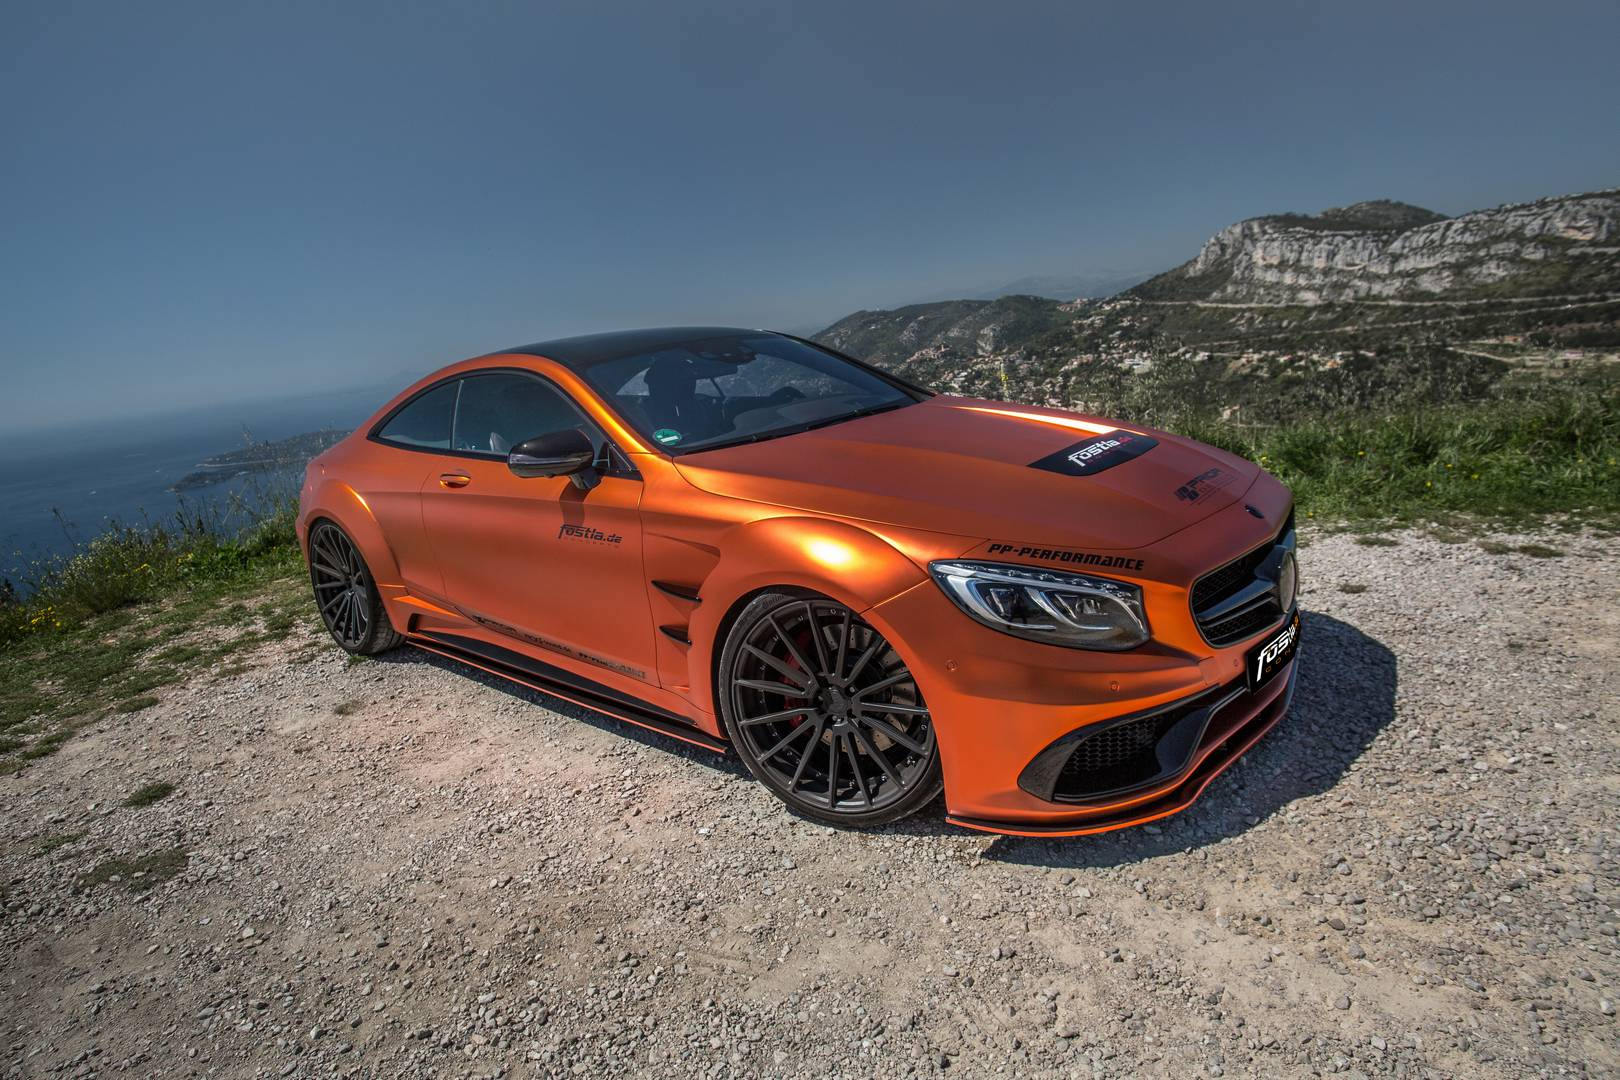 740hp orange chrome matt mercedes amg s63 by for Mercedes benz s 63 amg